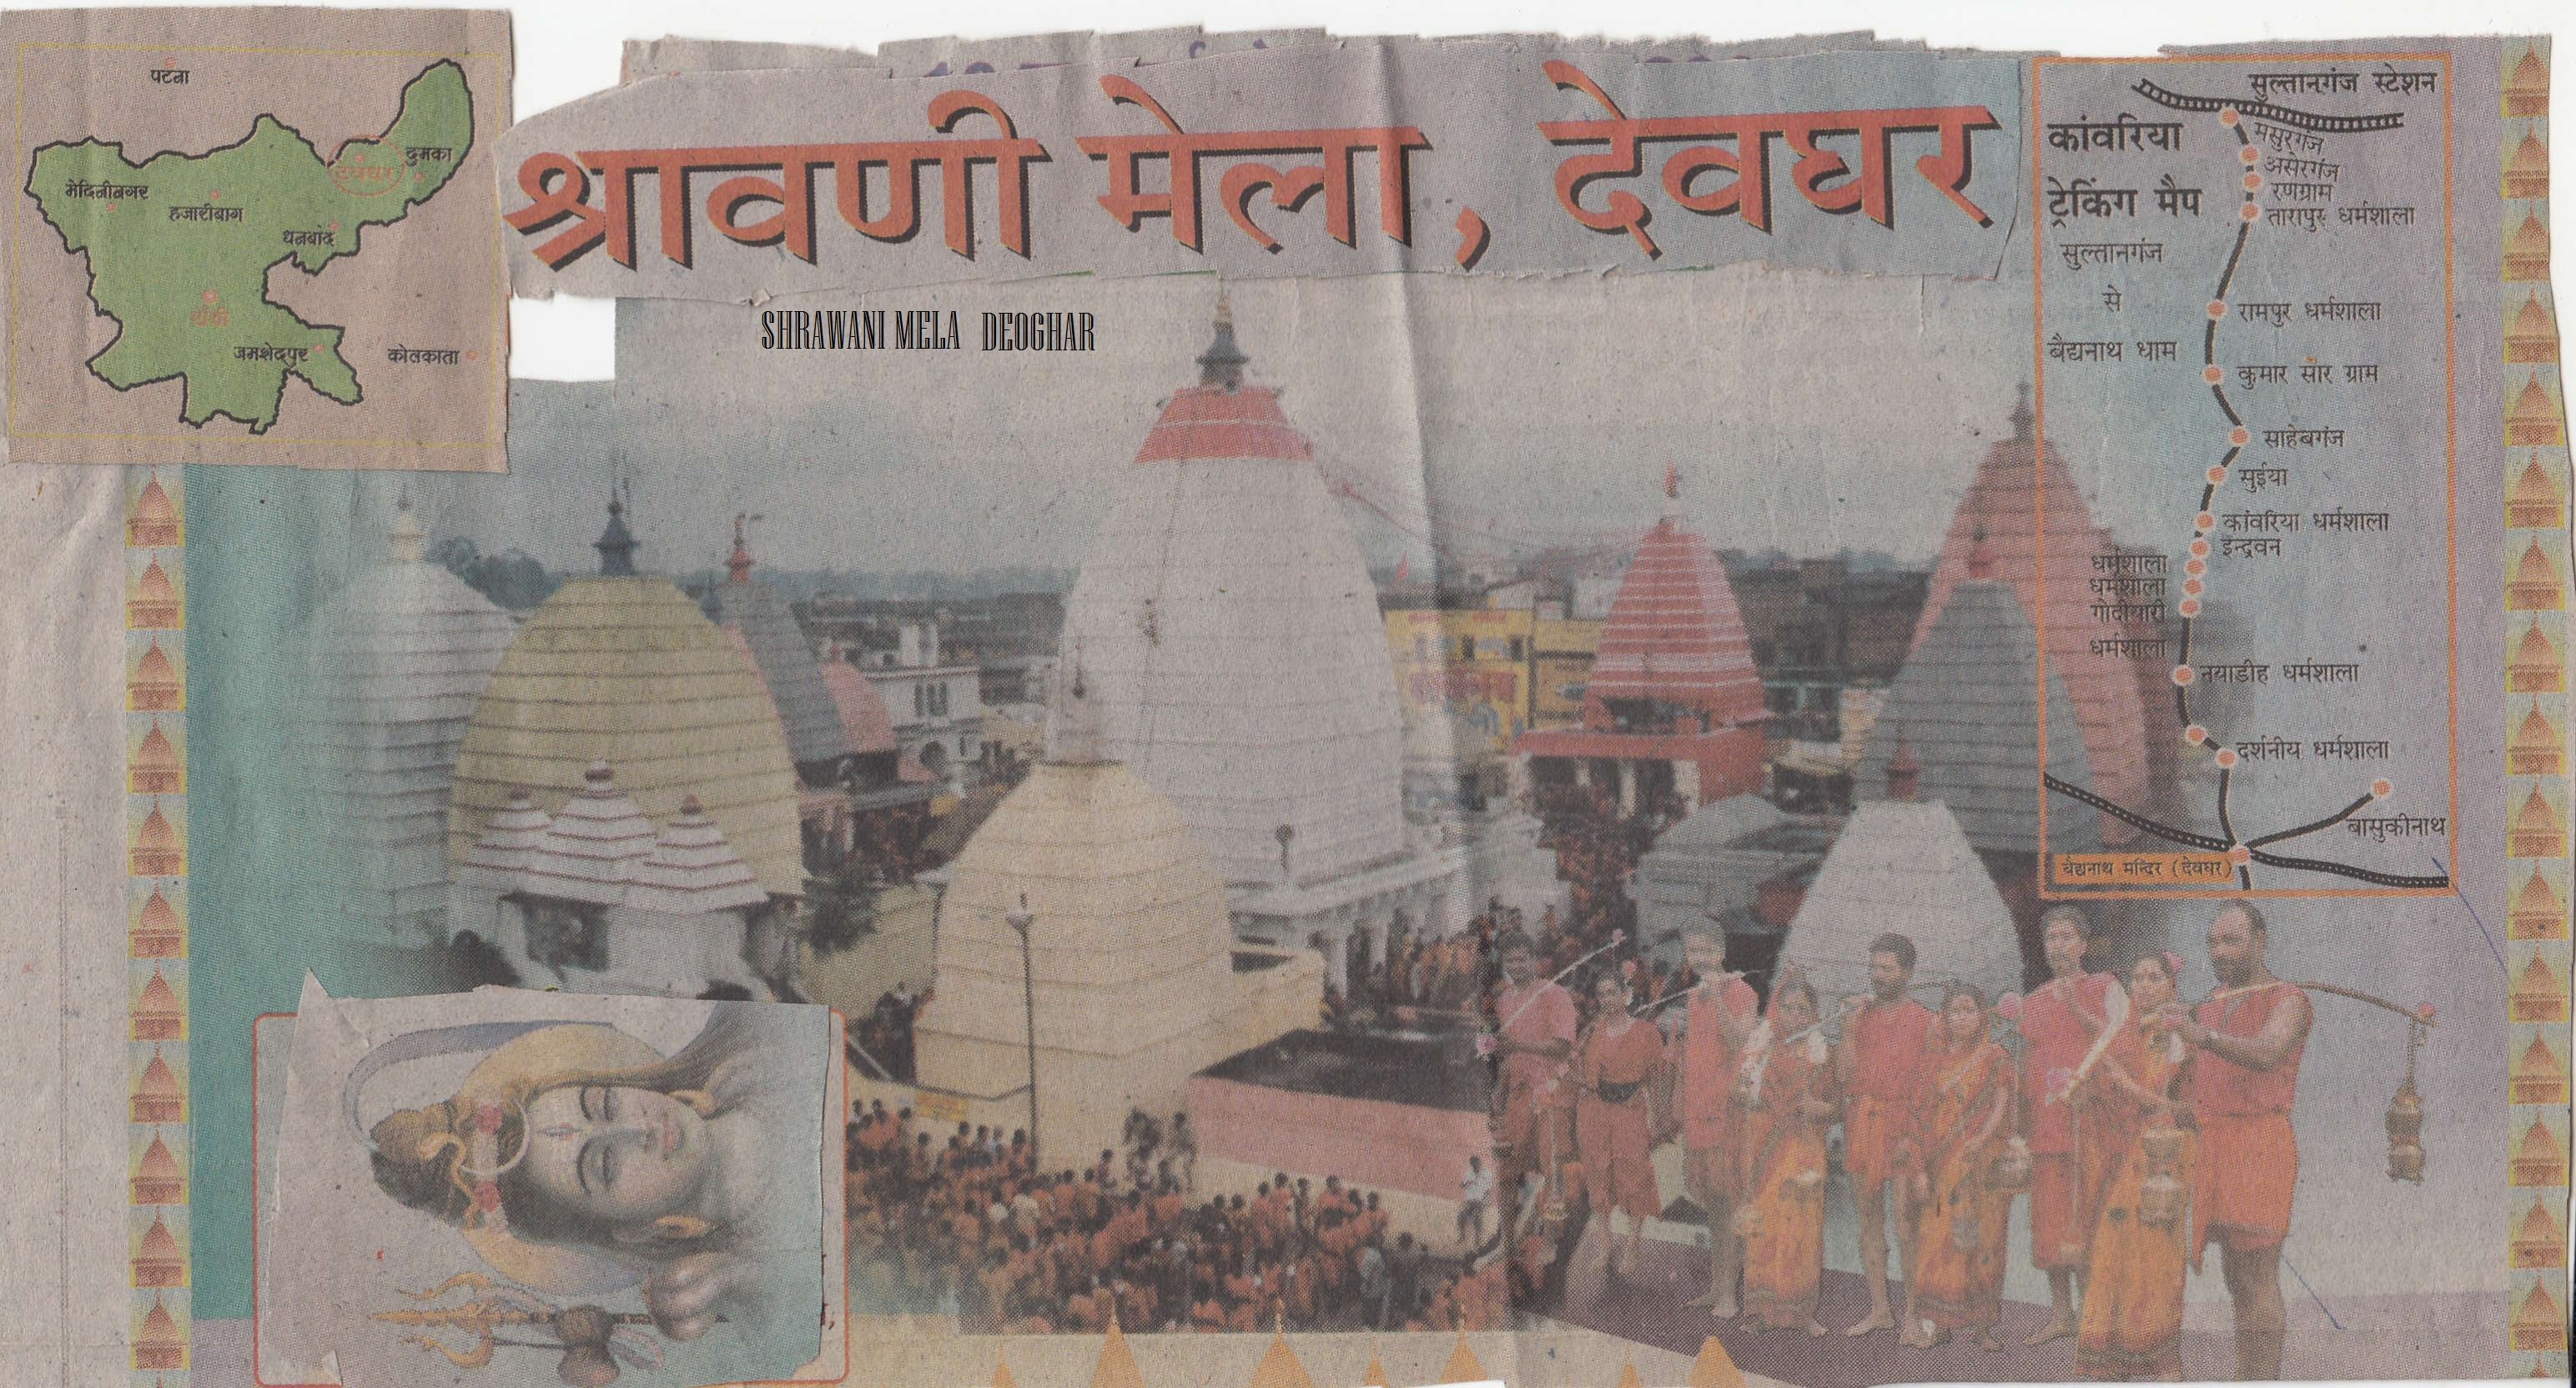 Delhi India Postal Code Baijnath Dham Lallanprasad